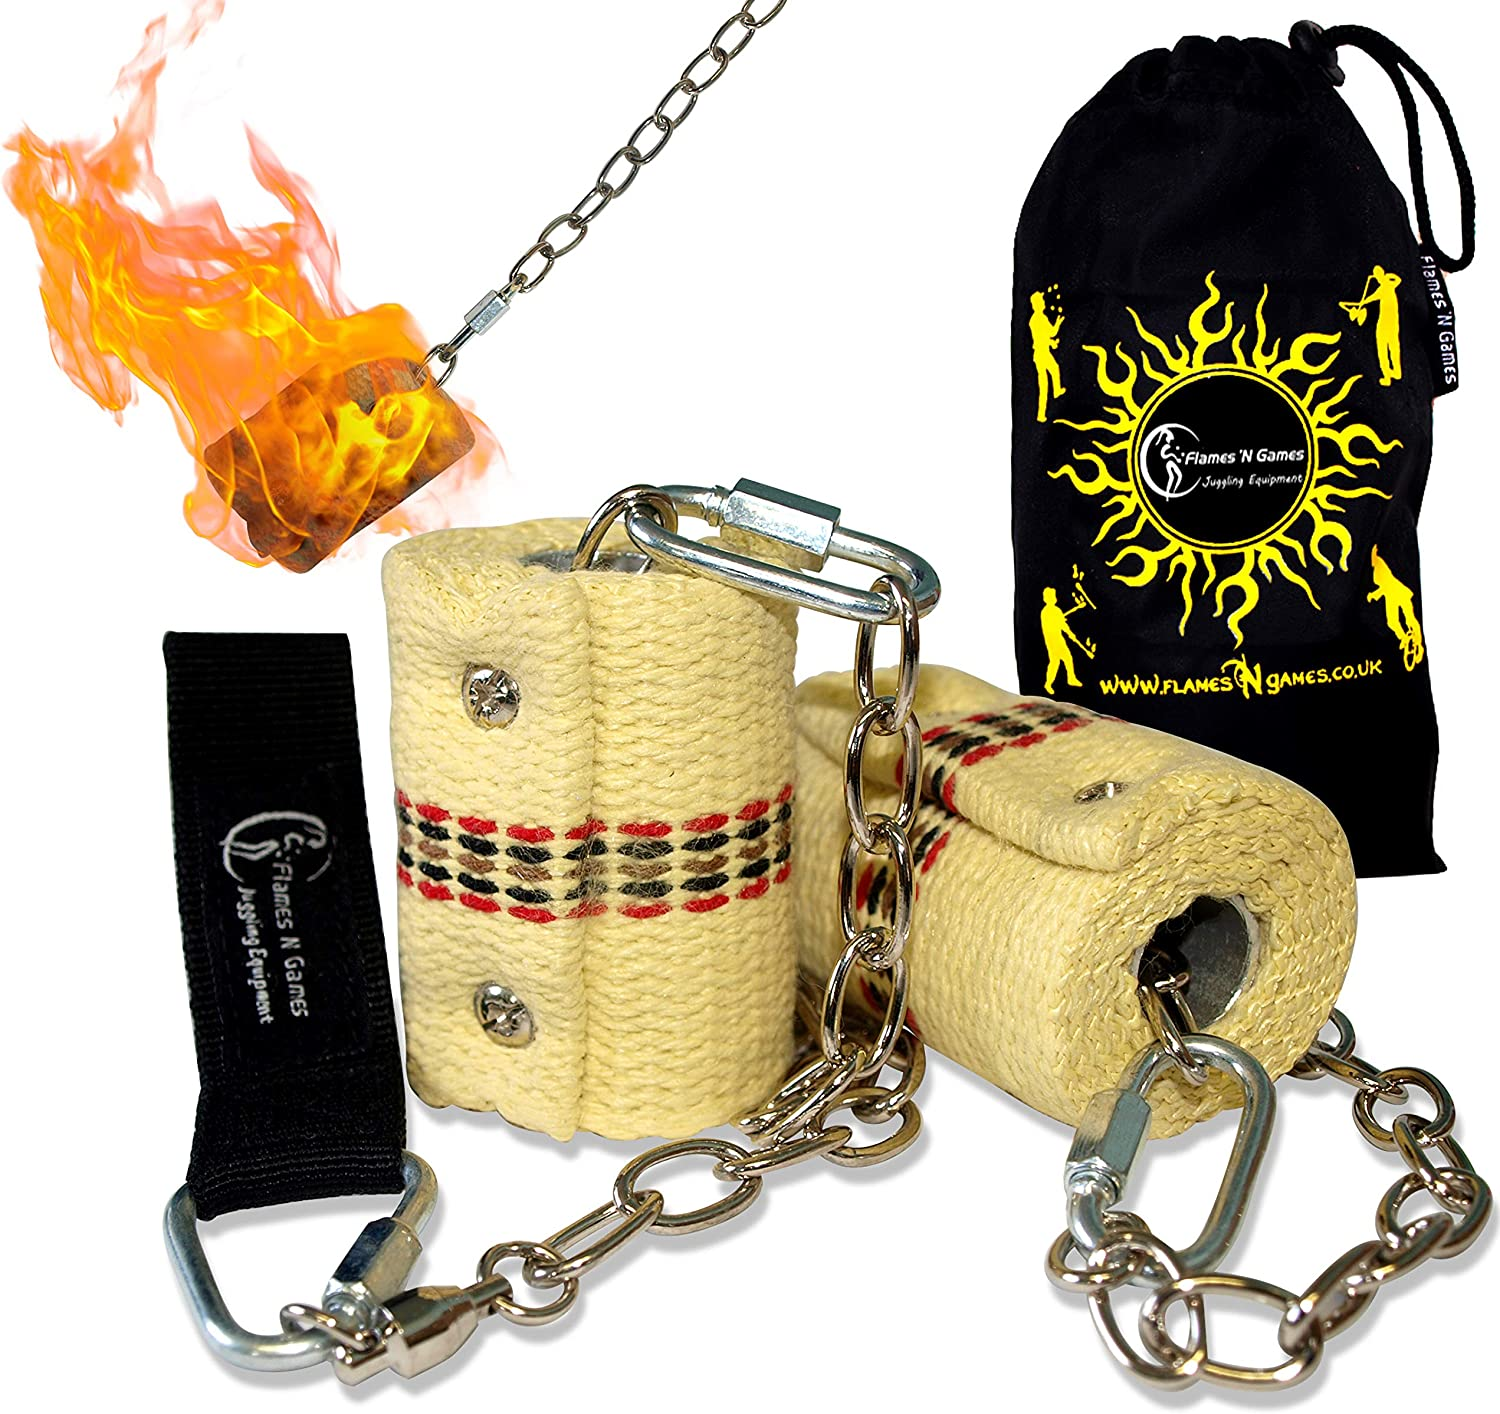 Fire Spinner Bag 2x65mm wicks Flames N Games Classic Pro Fire Poi